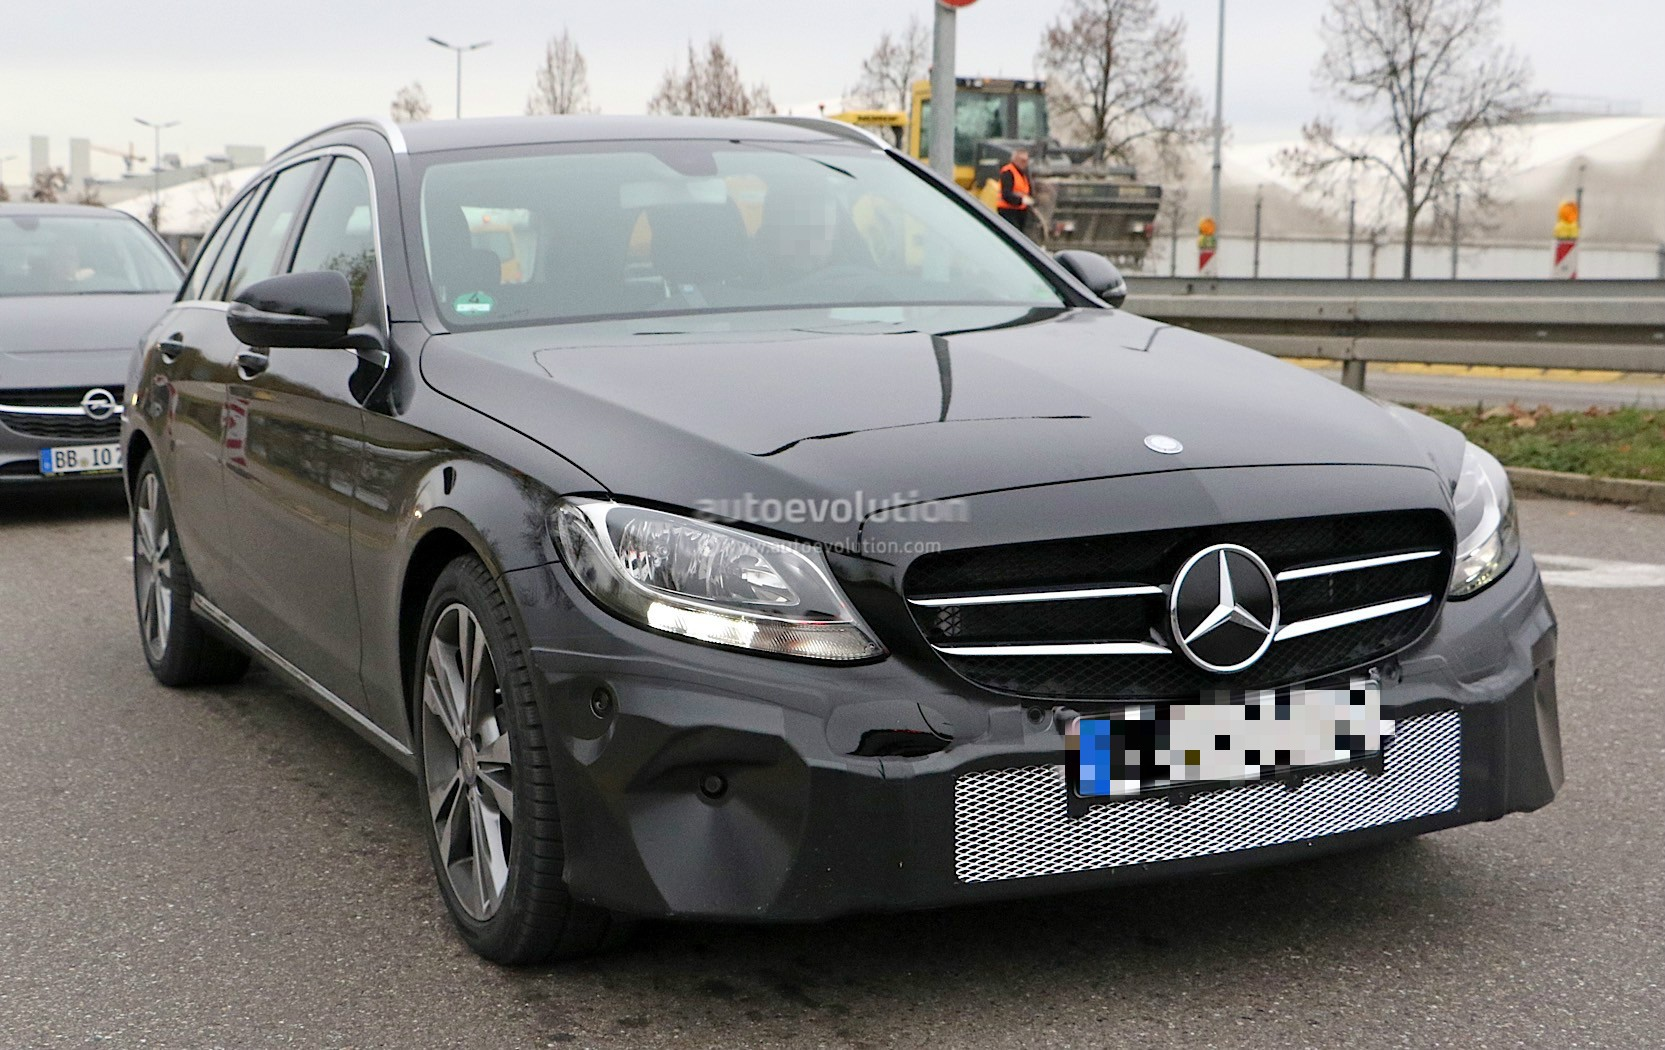 2018 mercedes benz c class facelift shows interior for the for Pictures of a mercedes benz